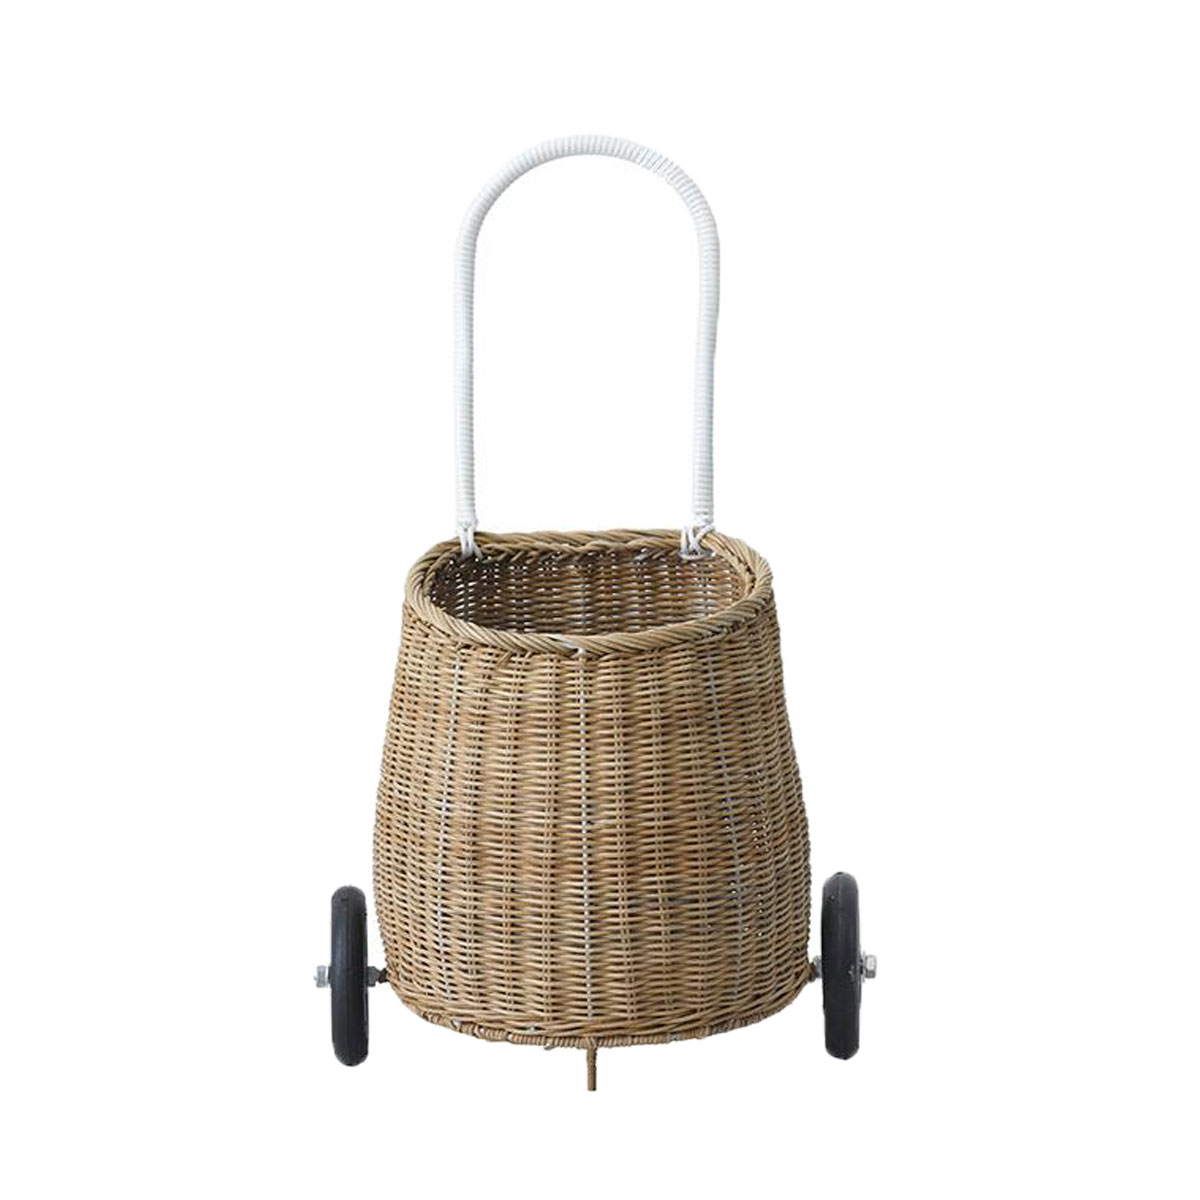 Olli Ella Luggy Basket in Natural